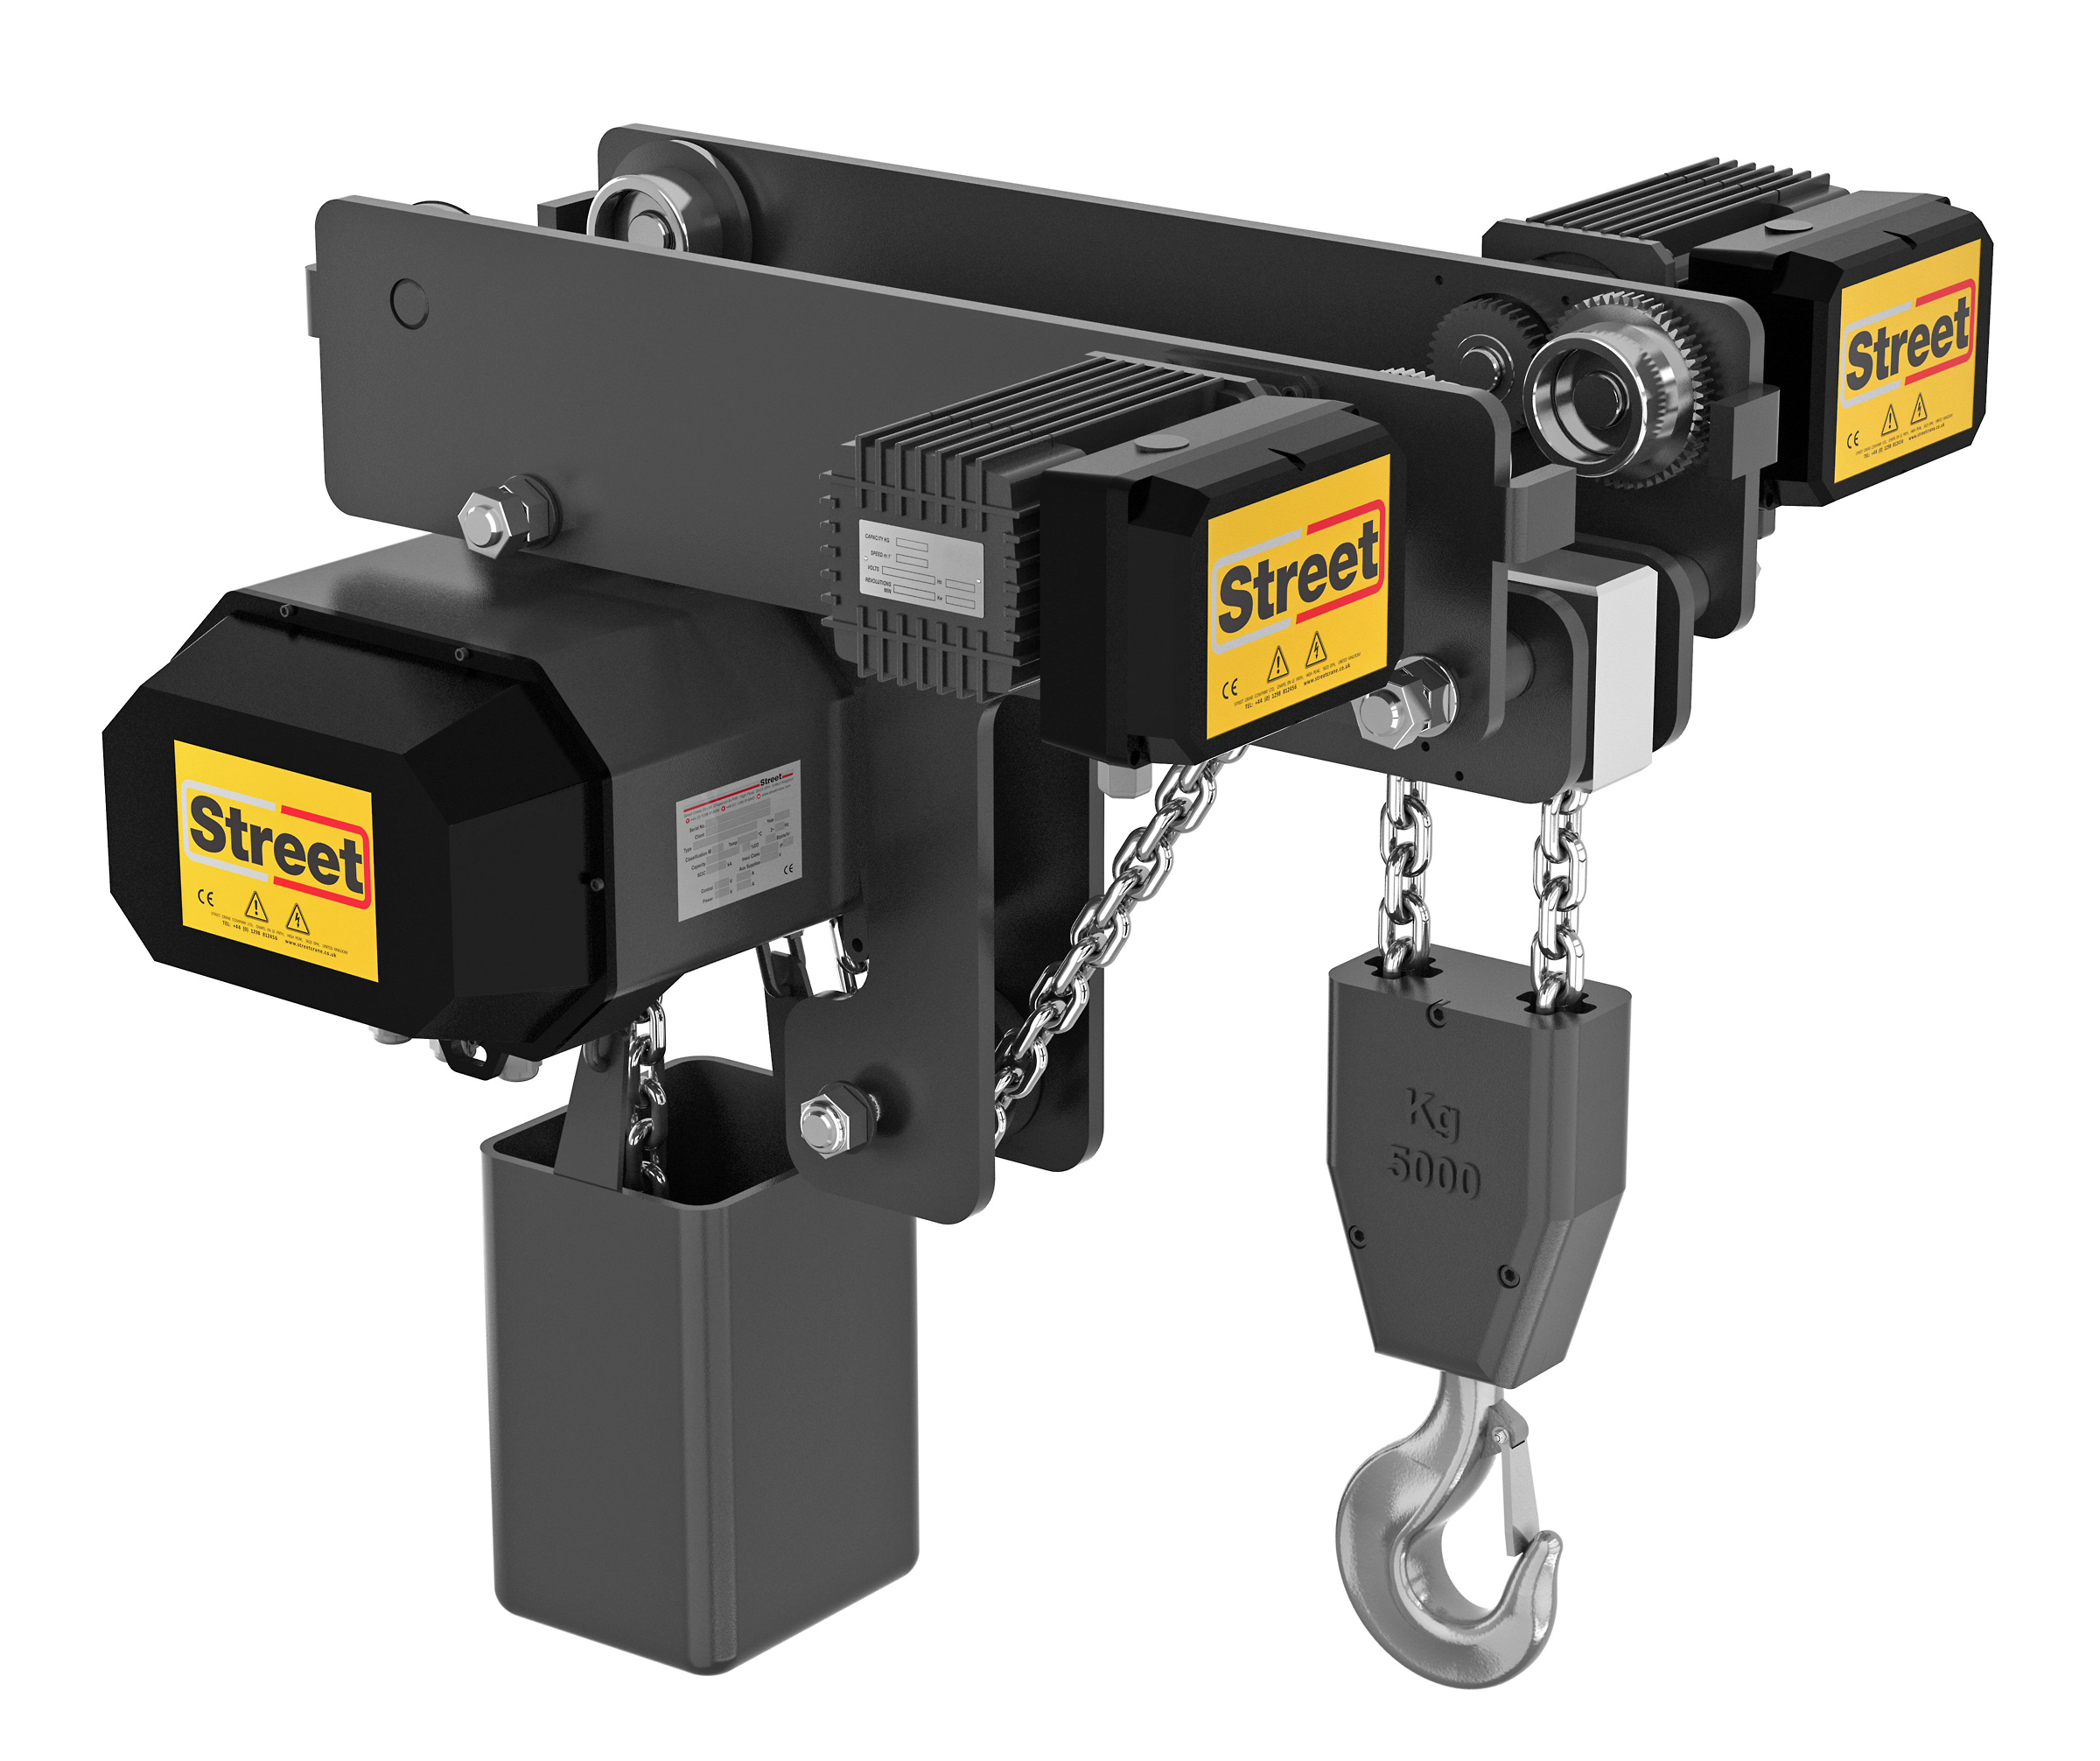 Street Crane Introduces New Electric Chain Hoist